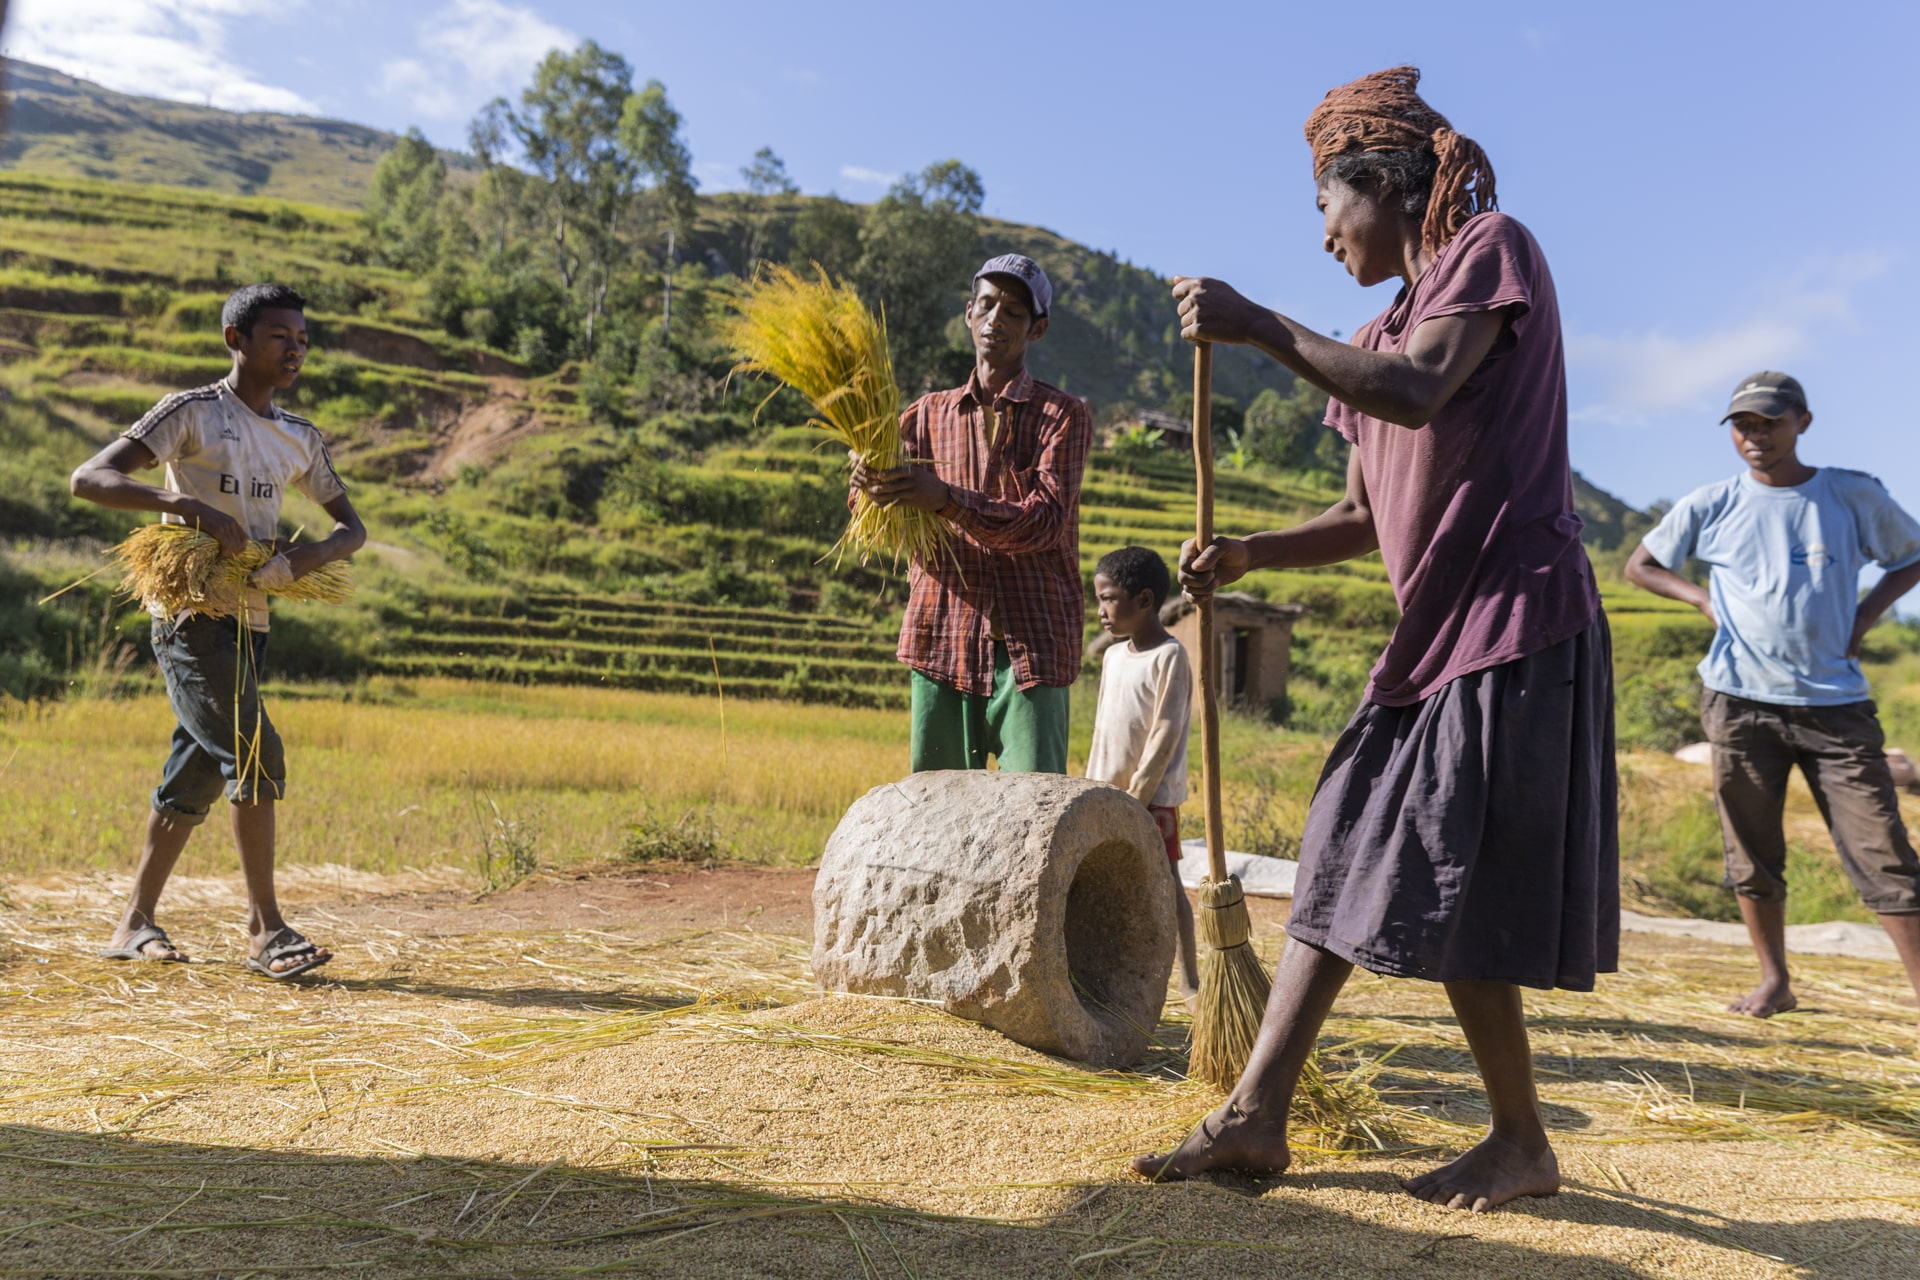 Rice is threshed by hand after harvesting.